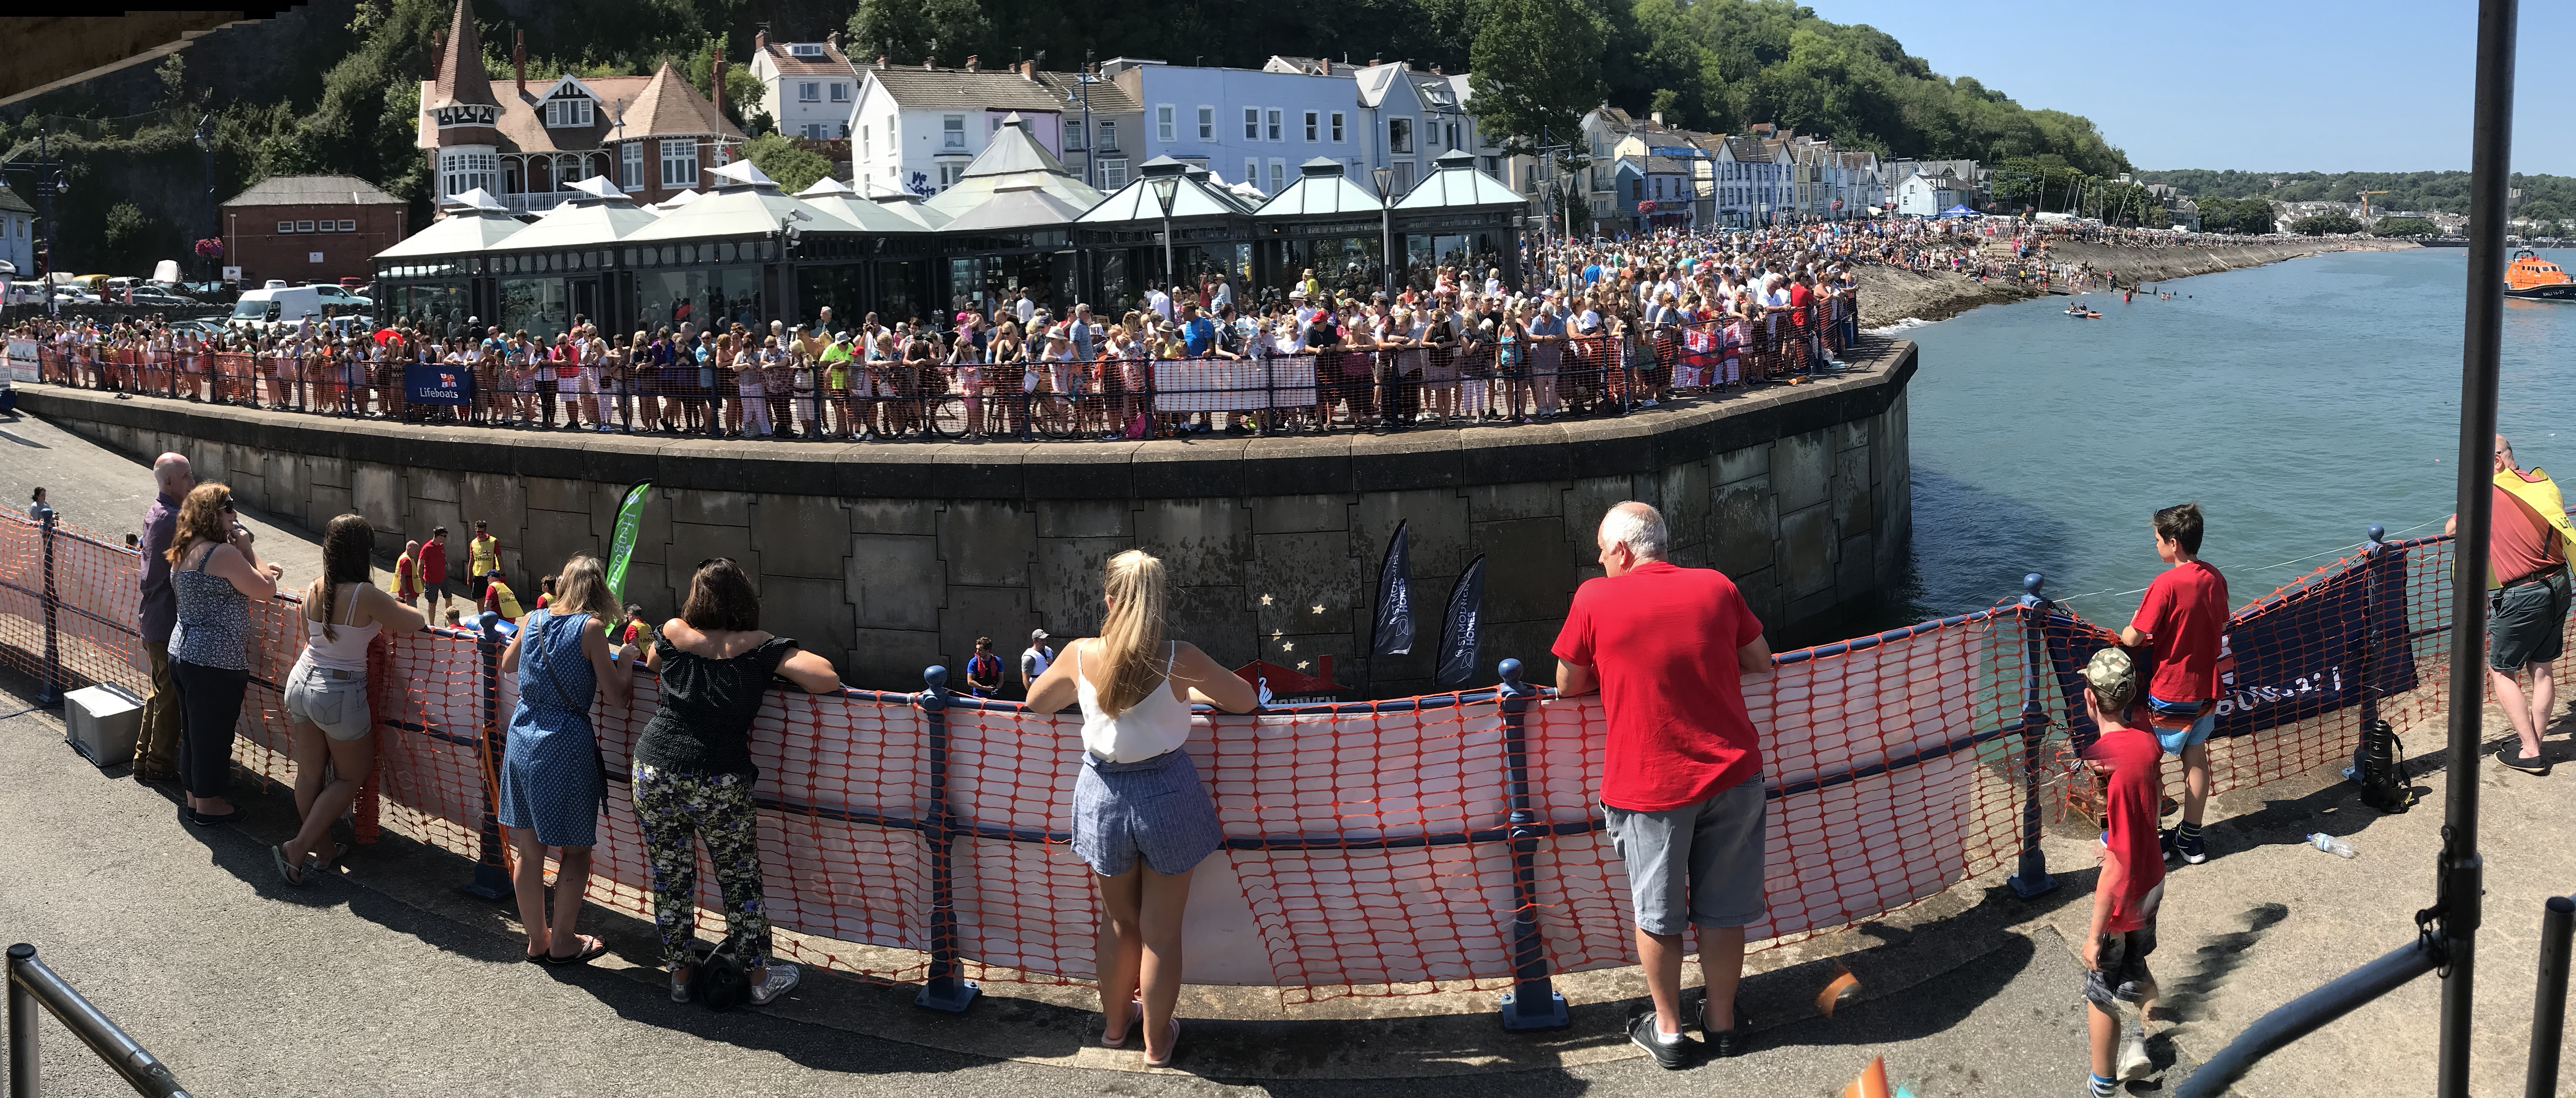 Large crowds attending the raft race